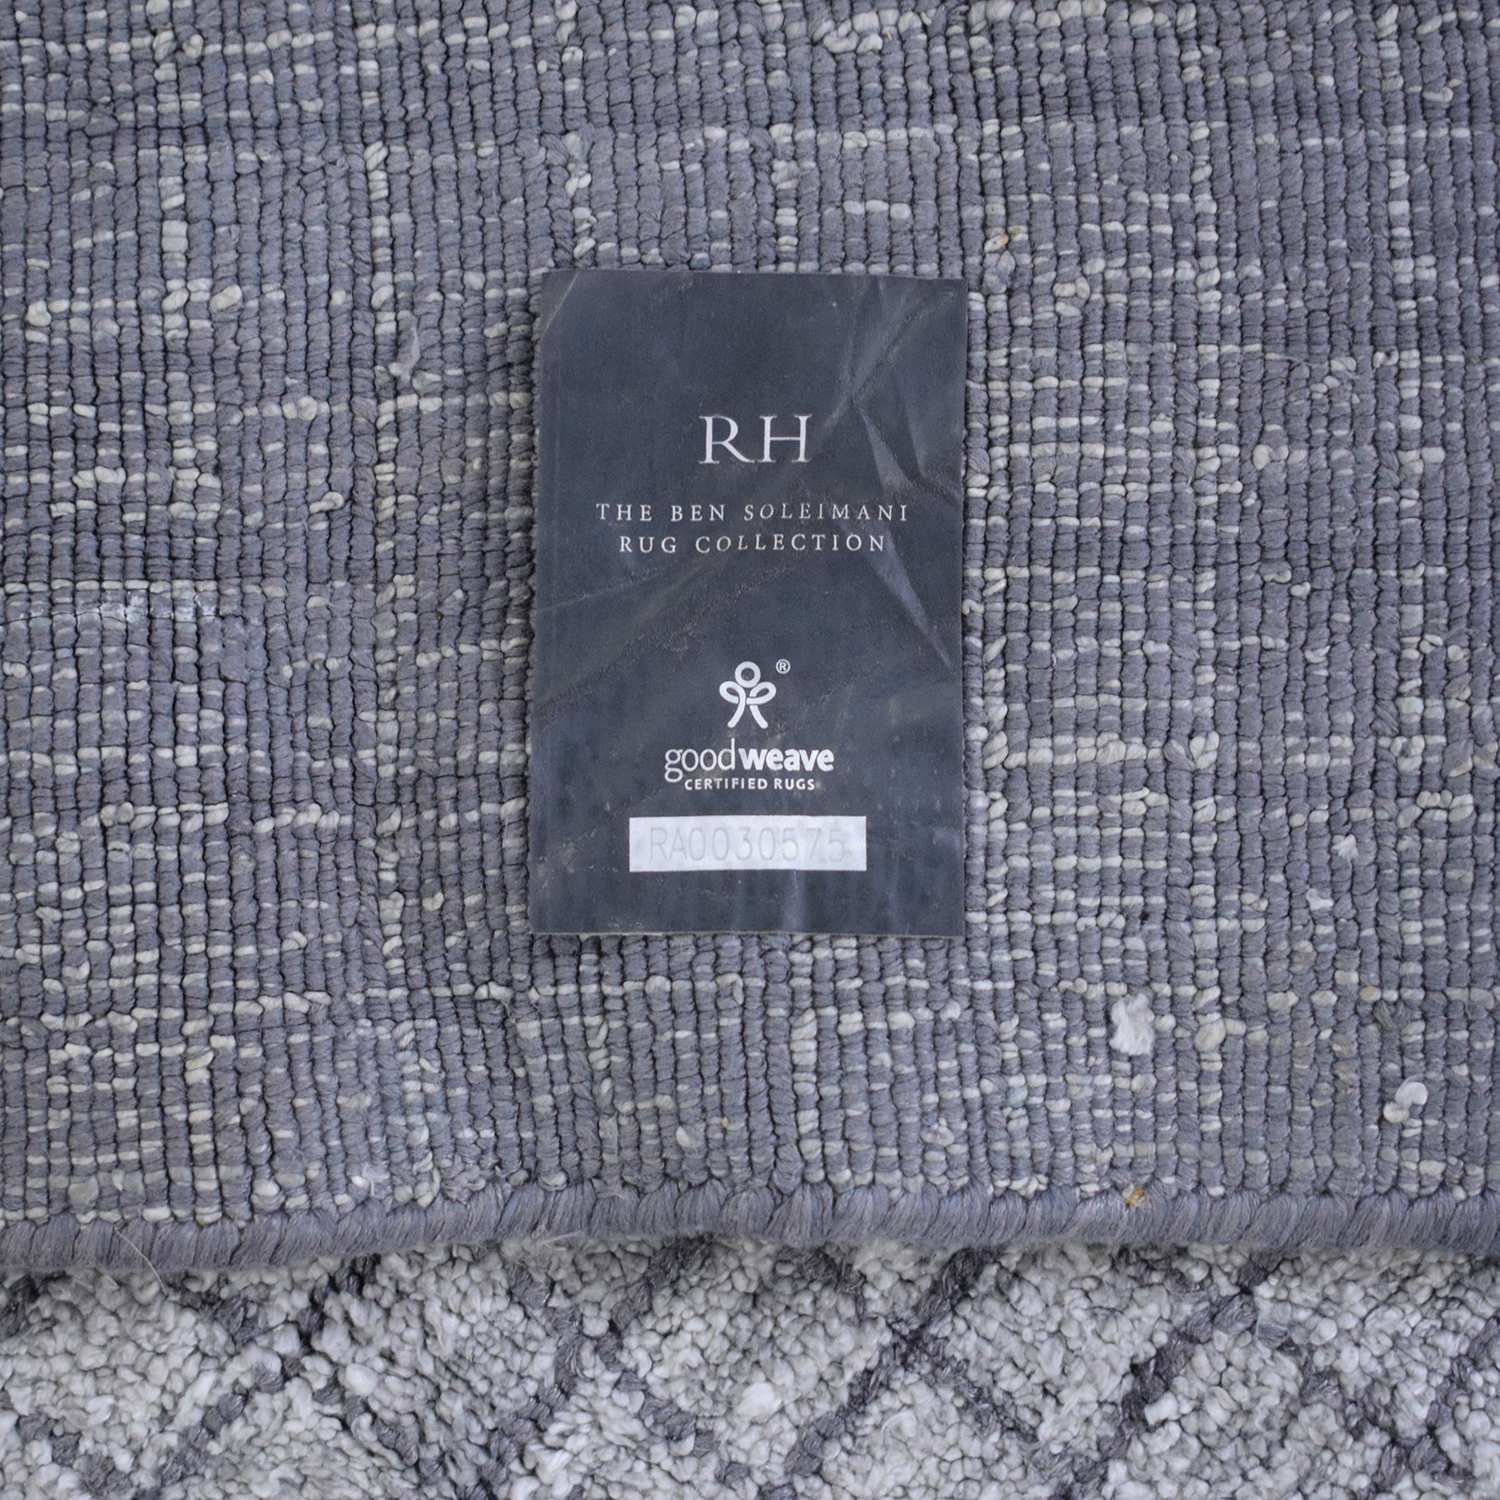 Restoration Hardware Restoration Hardware Ben Soleimani Collection Damas Rug second hand